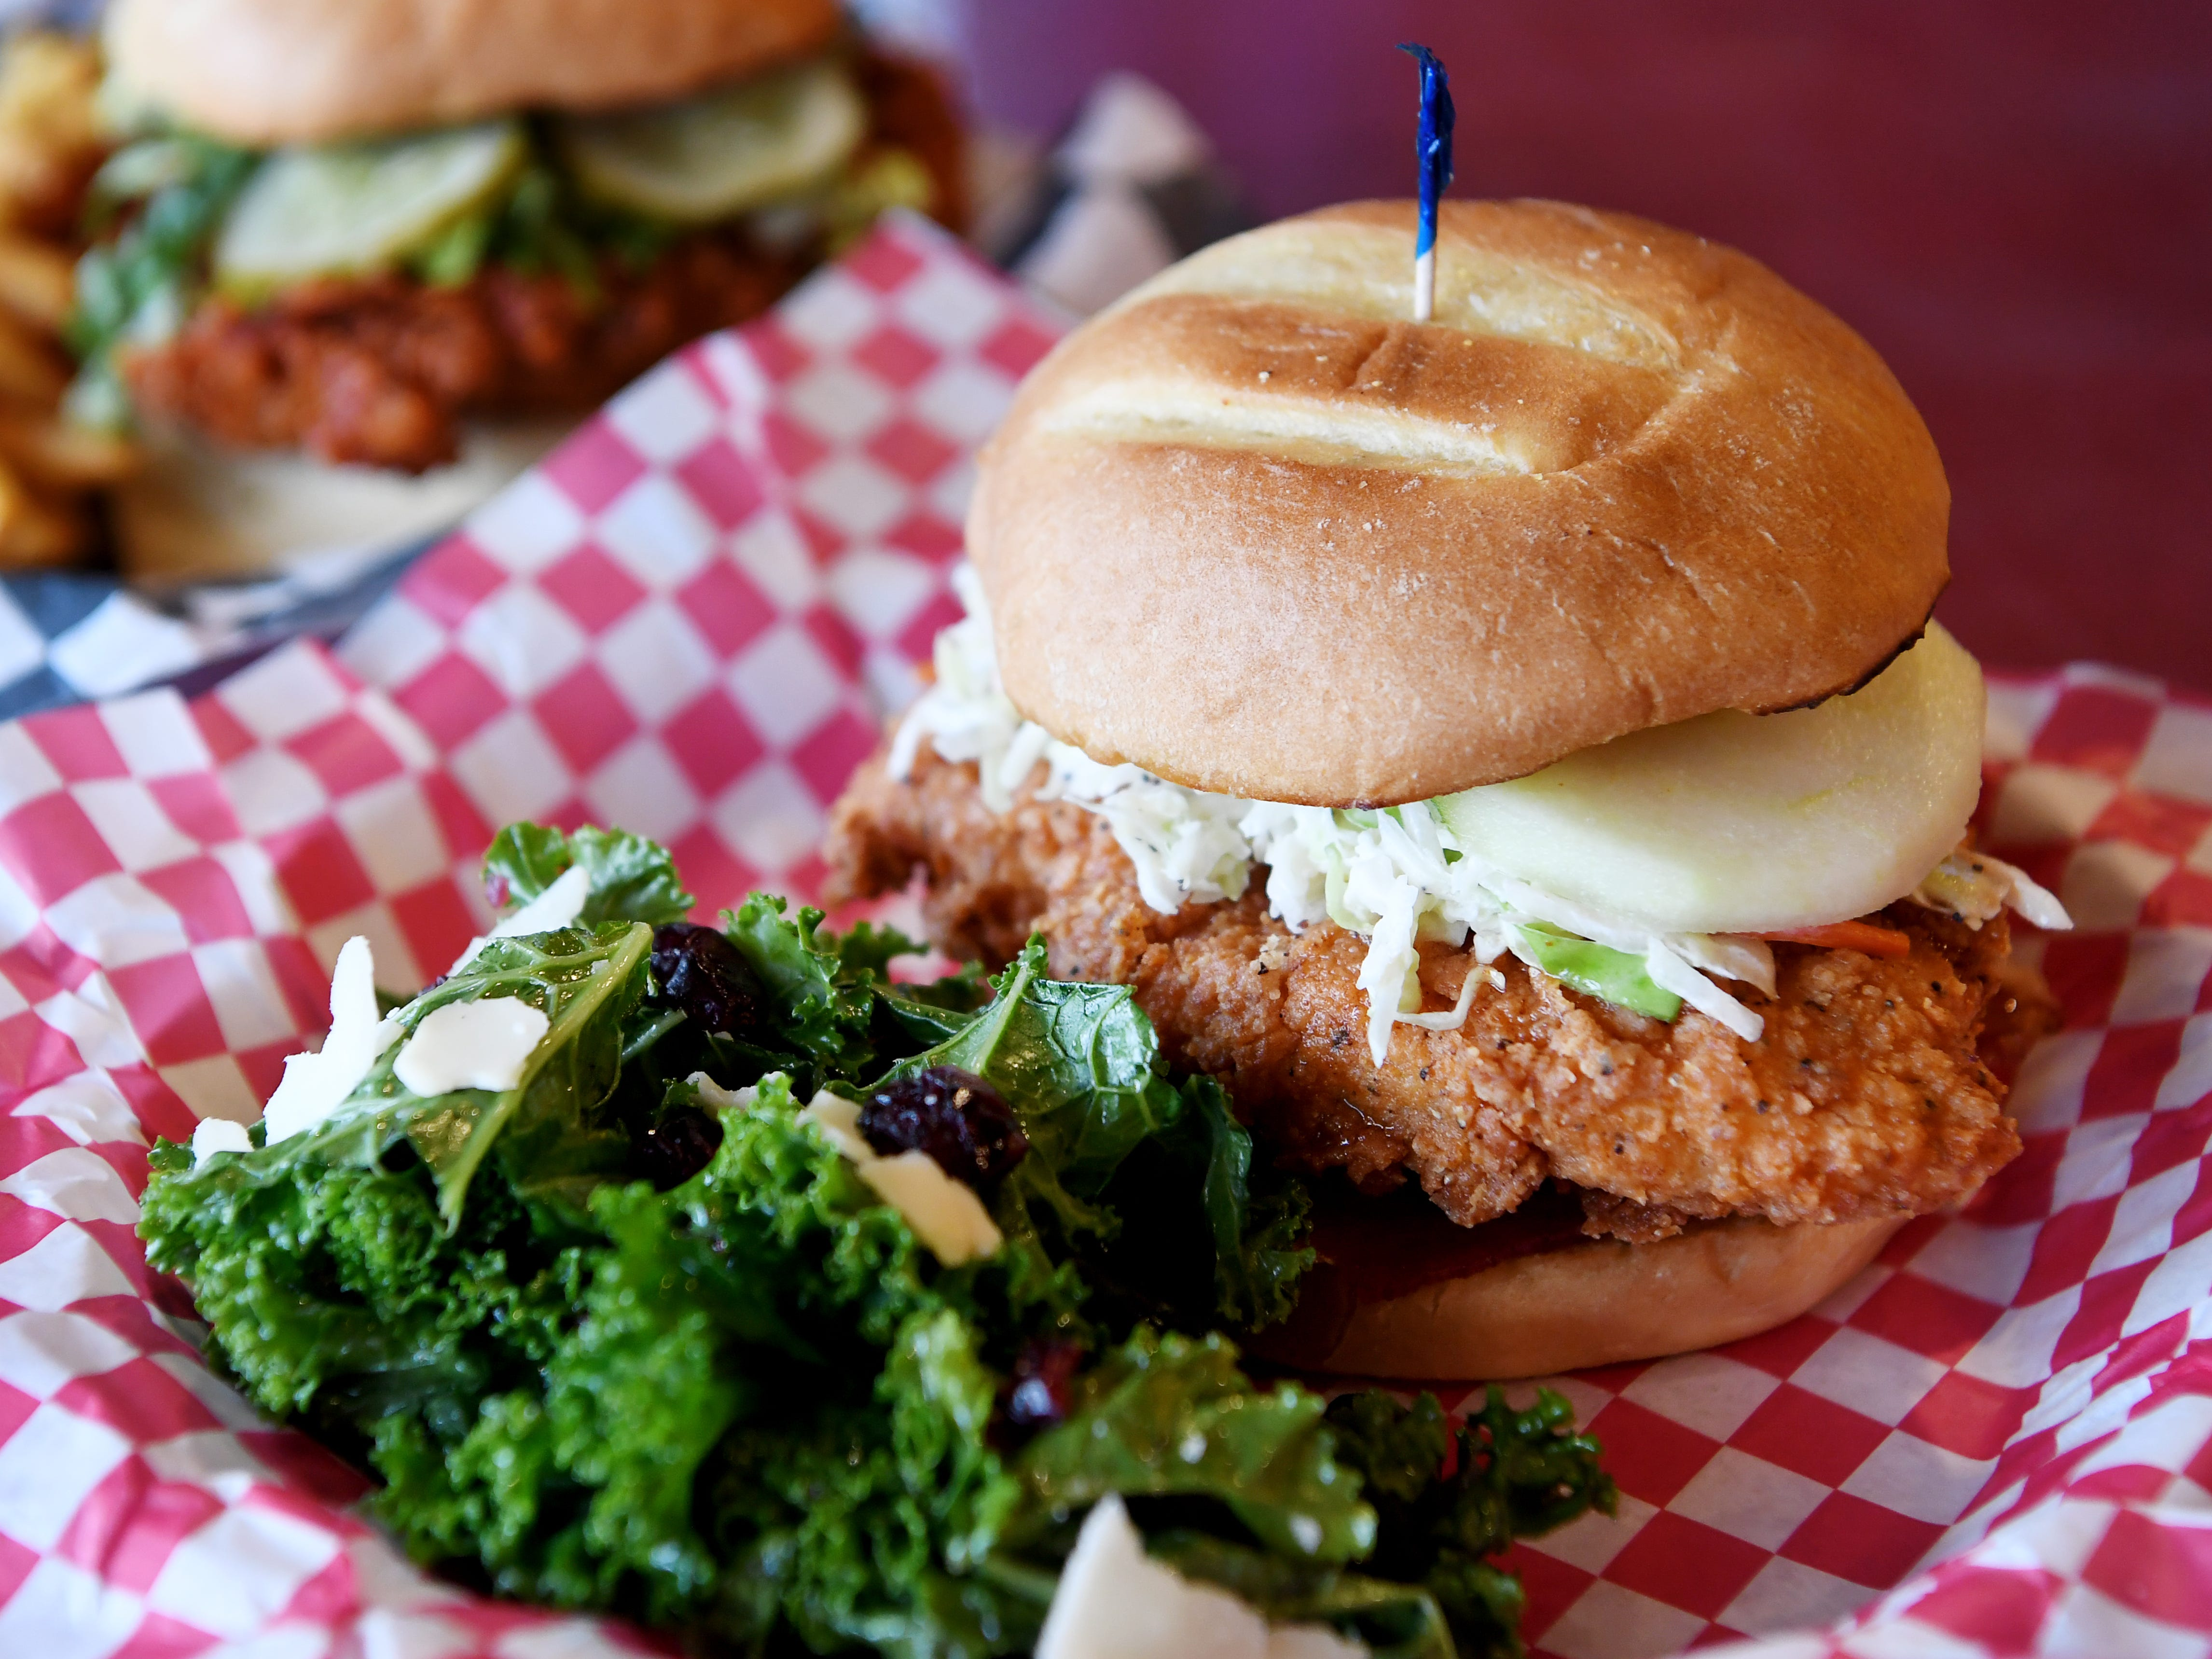 The Asheville chicken sandwich with a kale salad at Henrietta's Poultry Shoppe in Asheville Dec. 7, 2018.